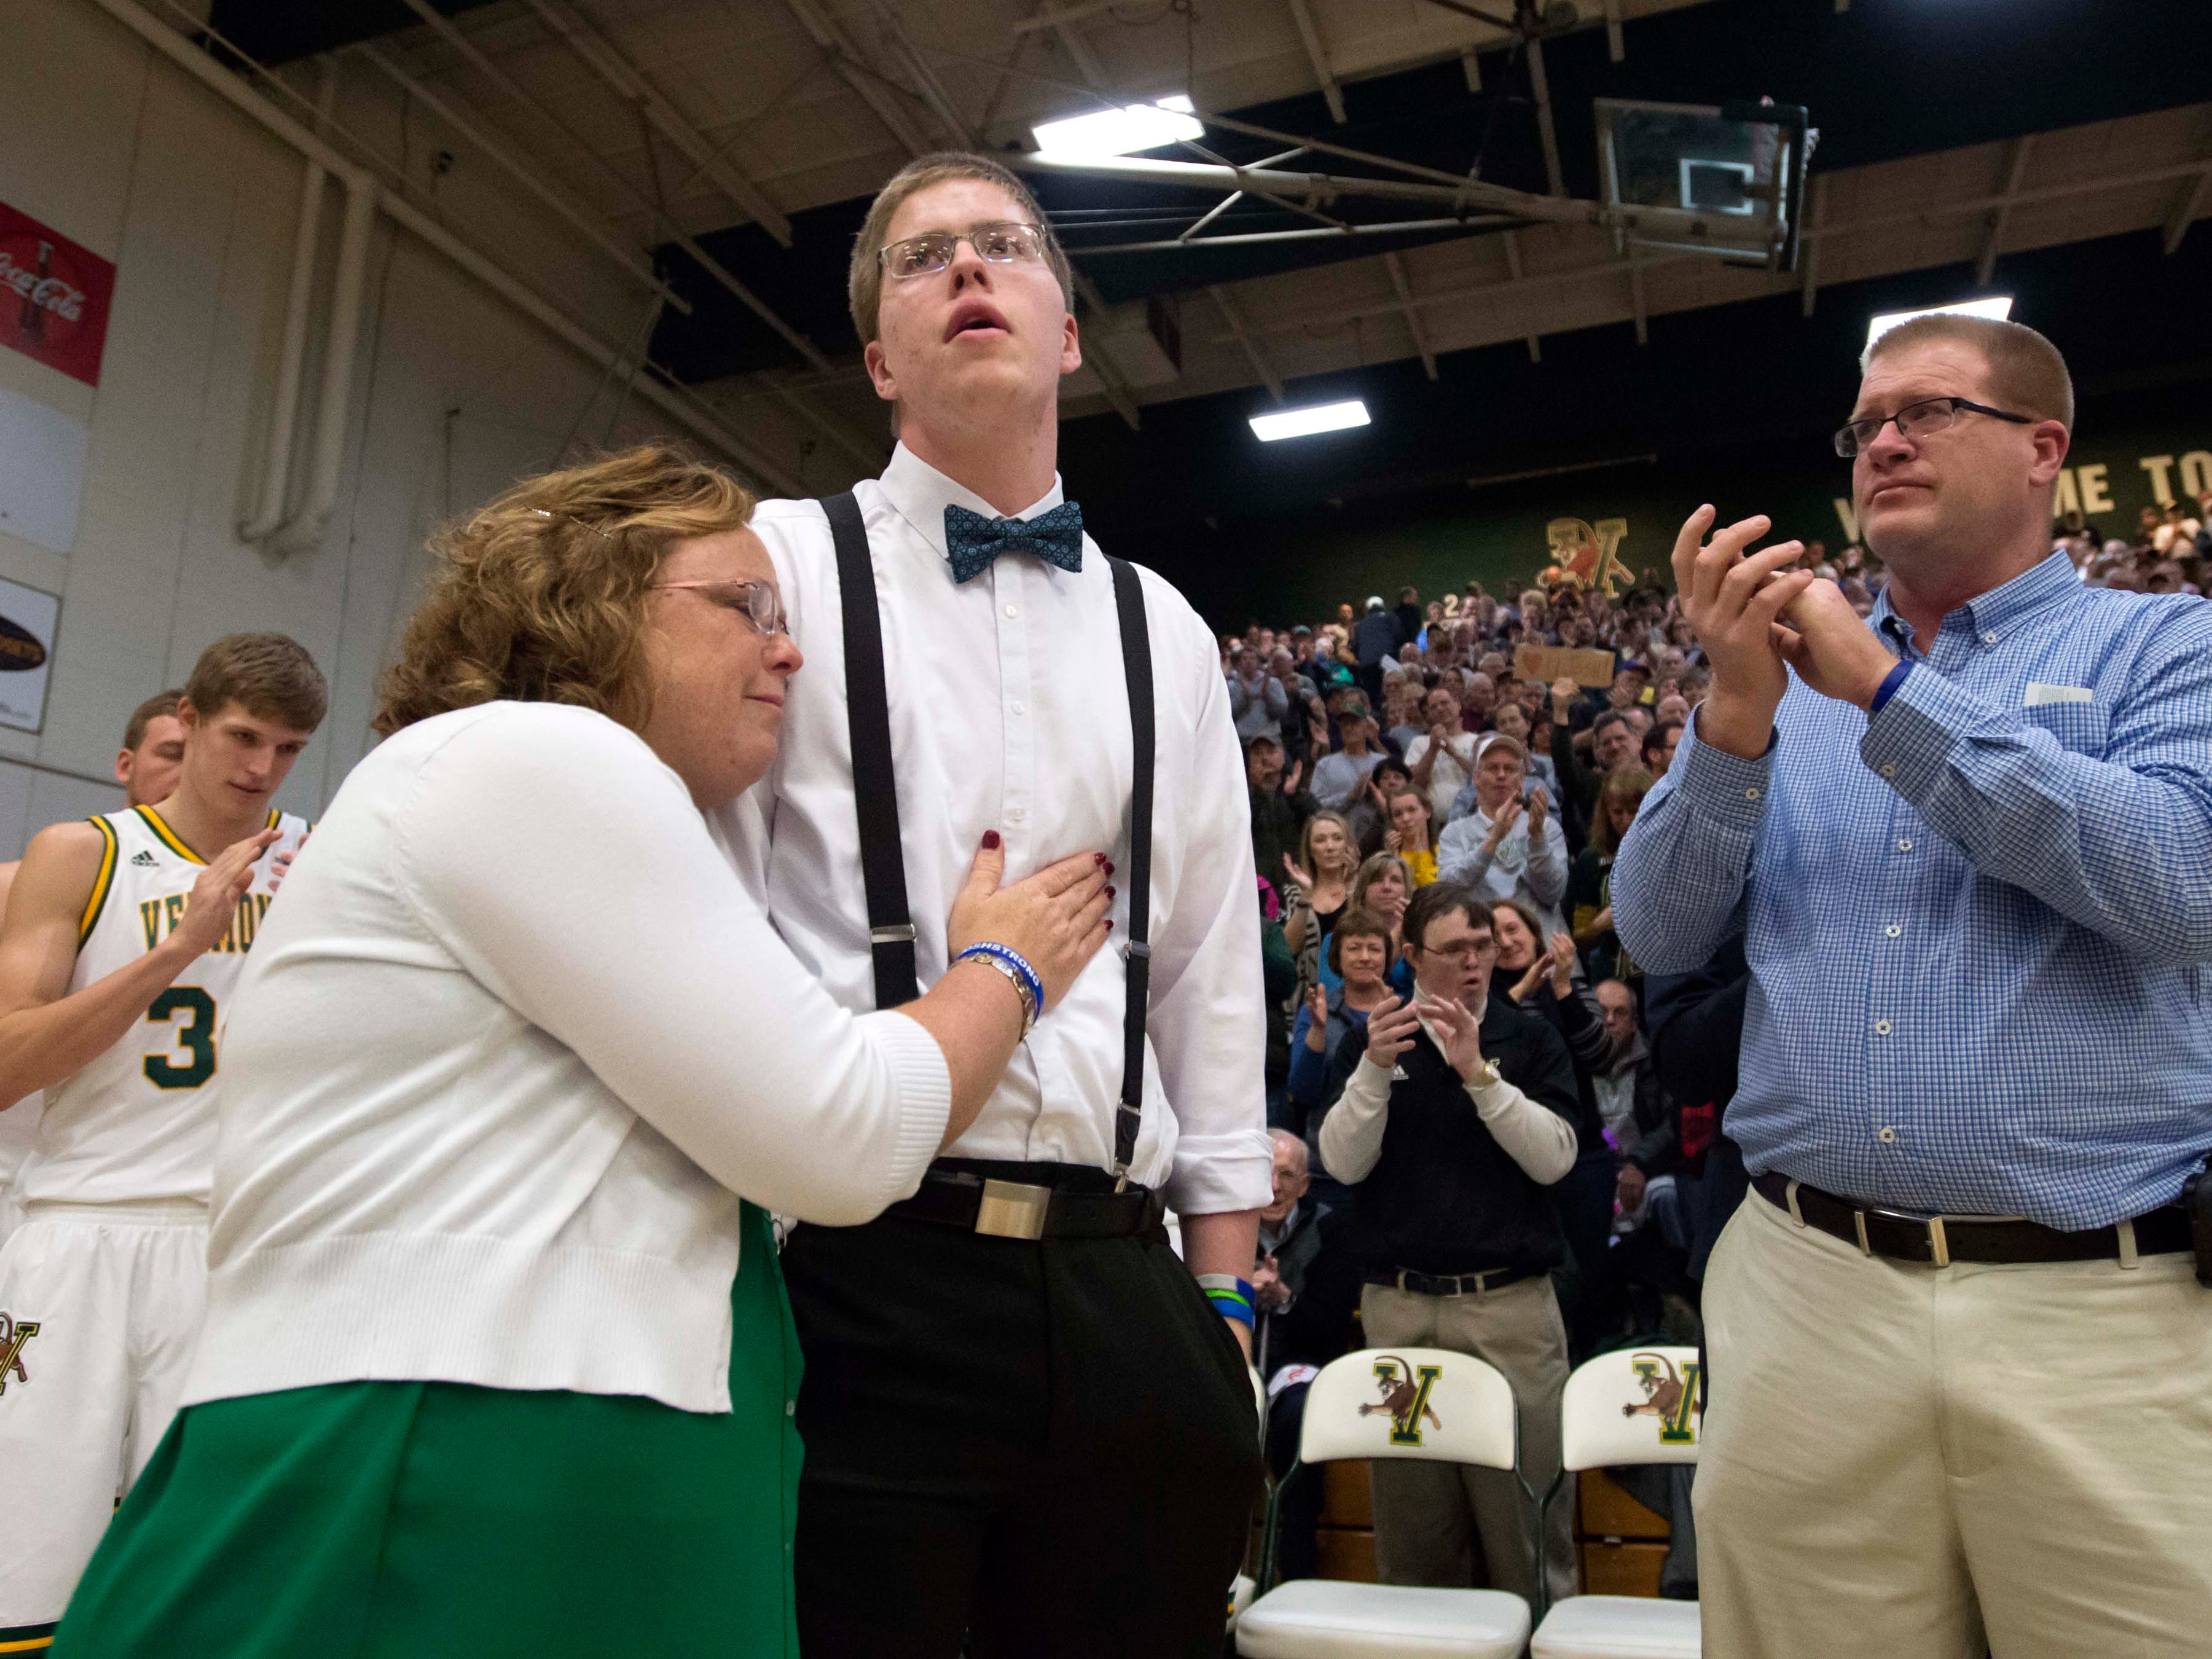 Josh Speidel gets a hug from his mother Lisa as his father Dave looks on as he is introduced before the start of the University of Vermont's game against Stony Brook's in Burlington on, January 30, 2016.